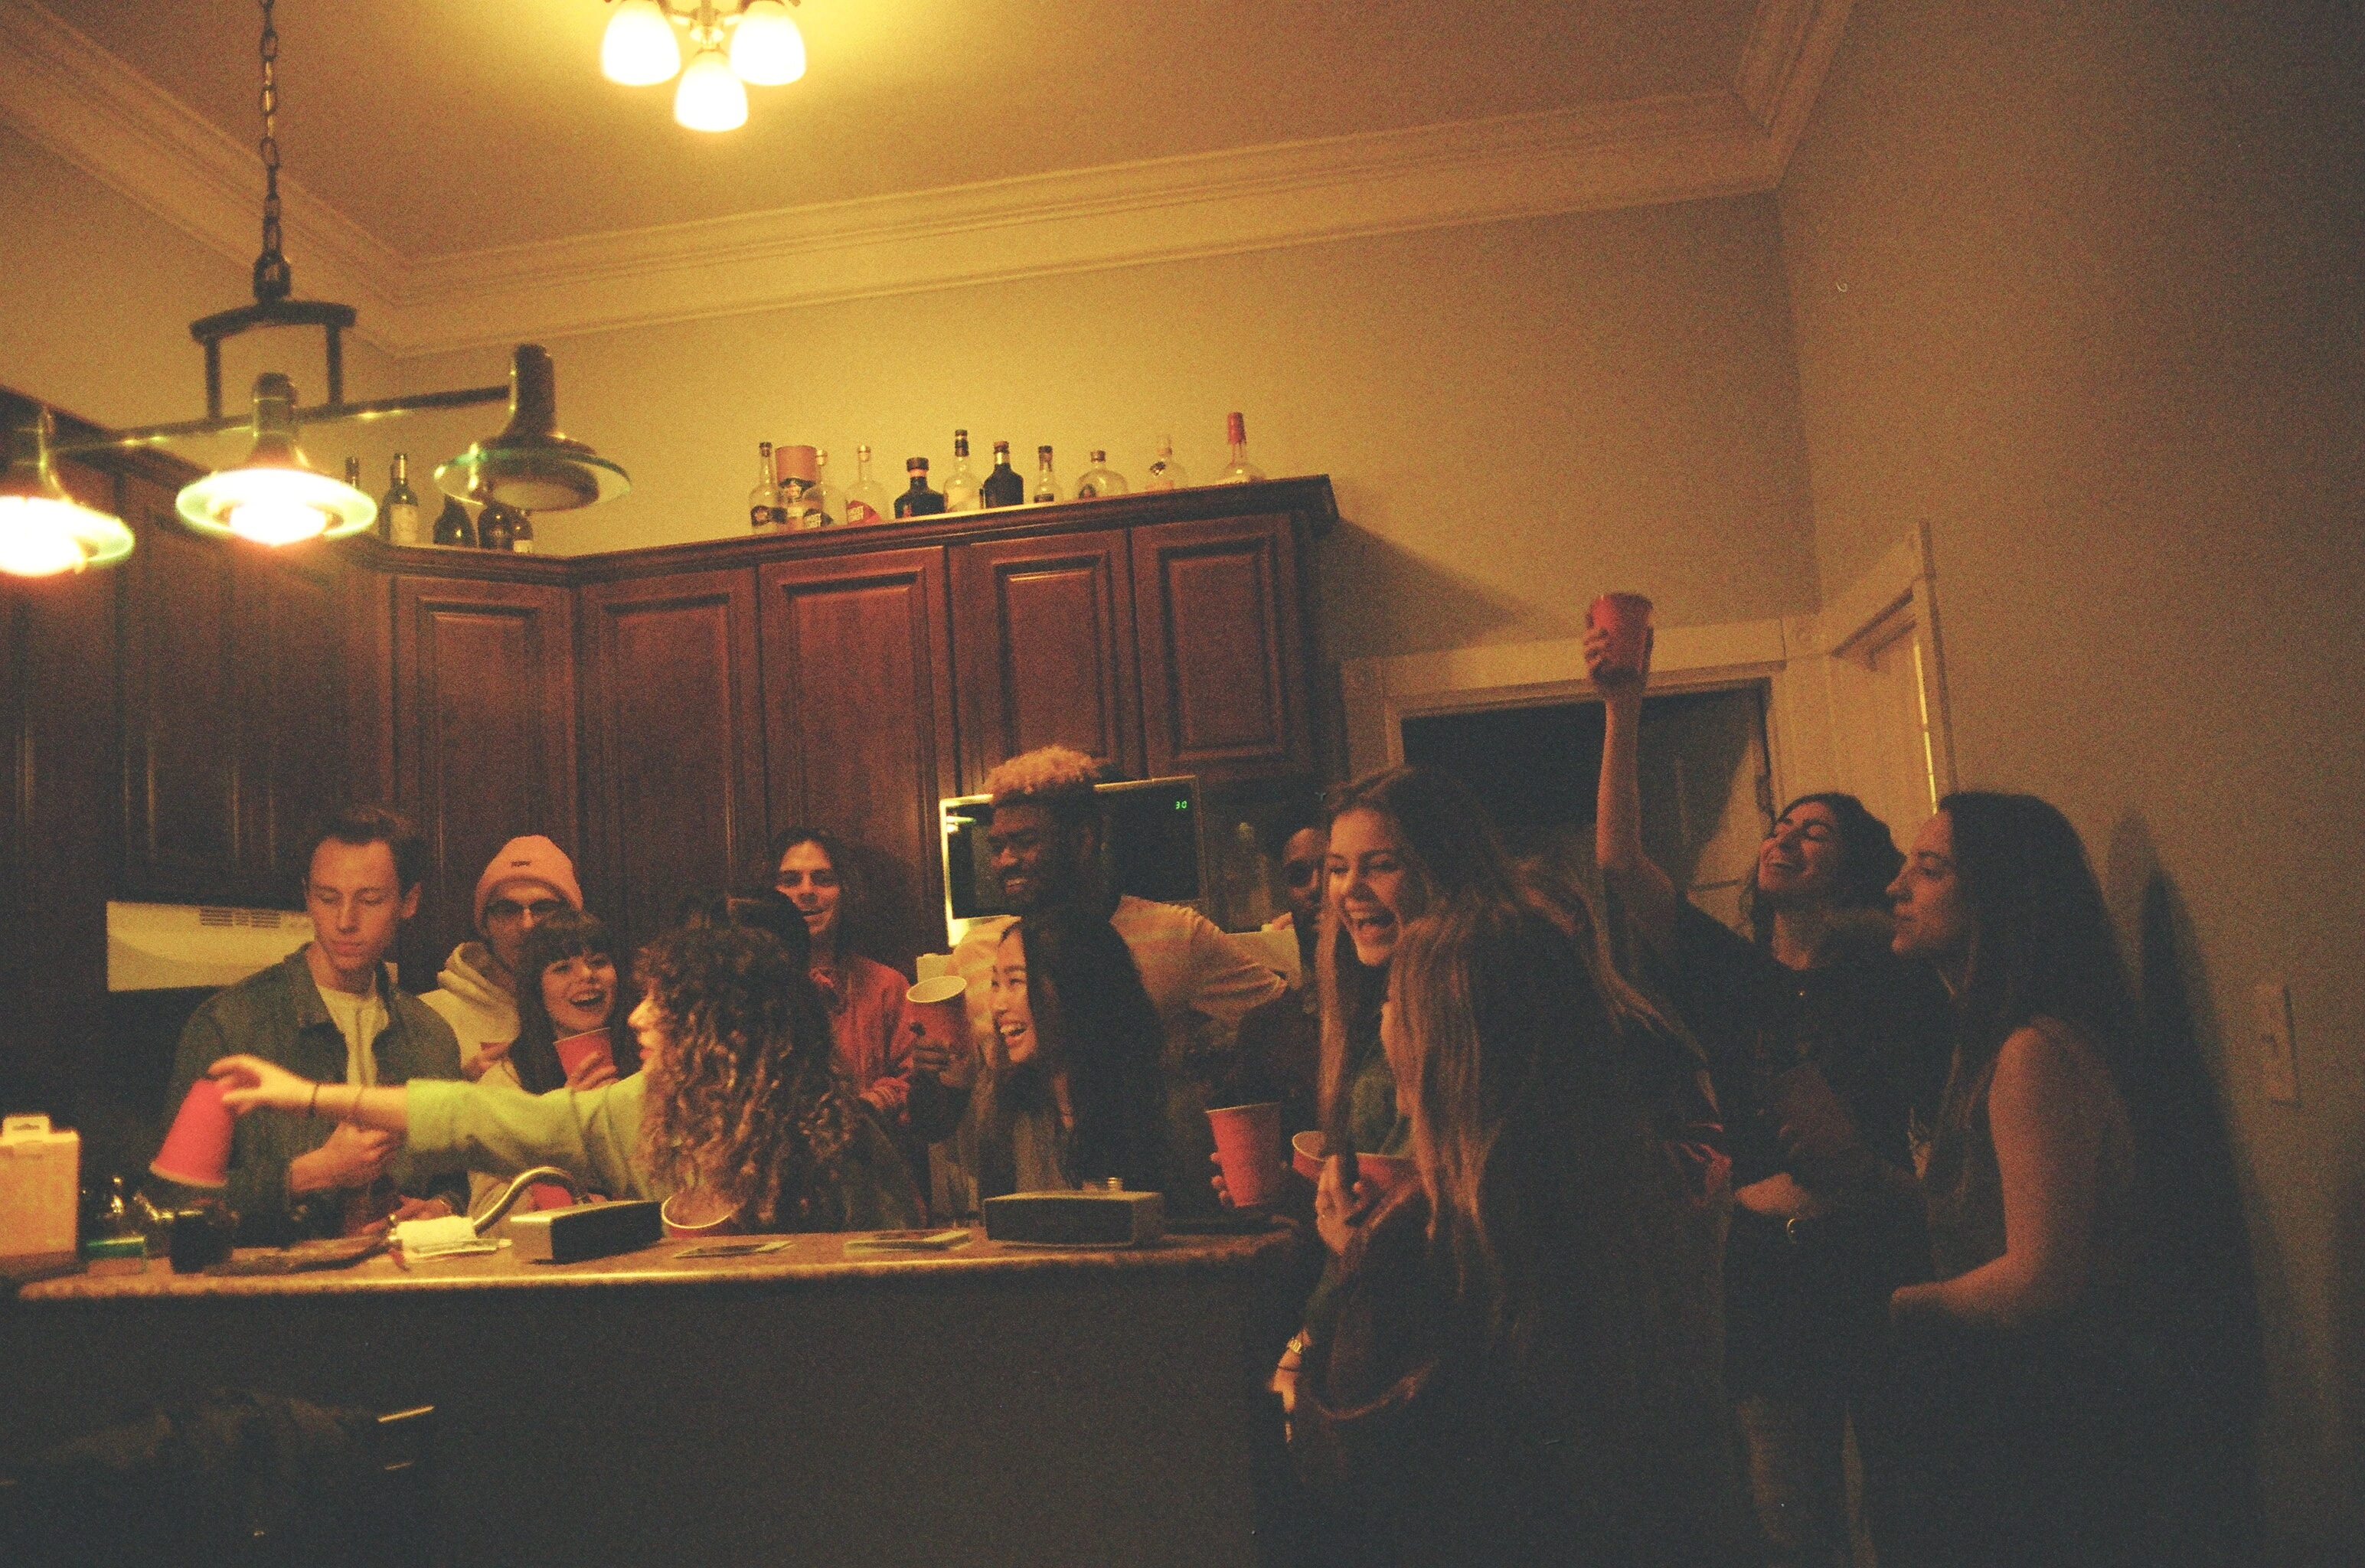 a bunch of young people in a kitchen at a party having drinks